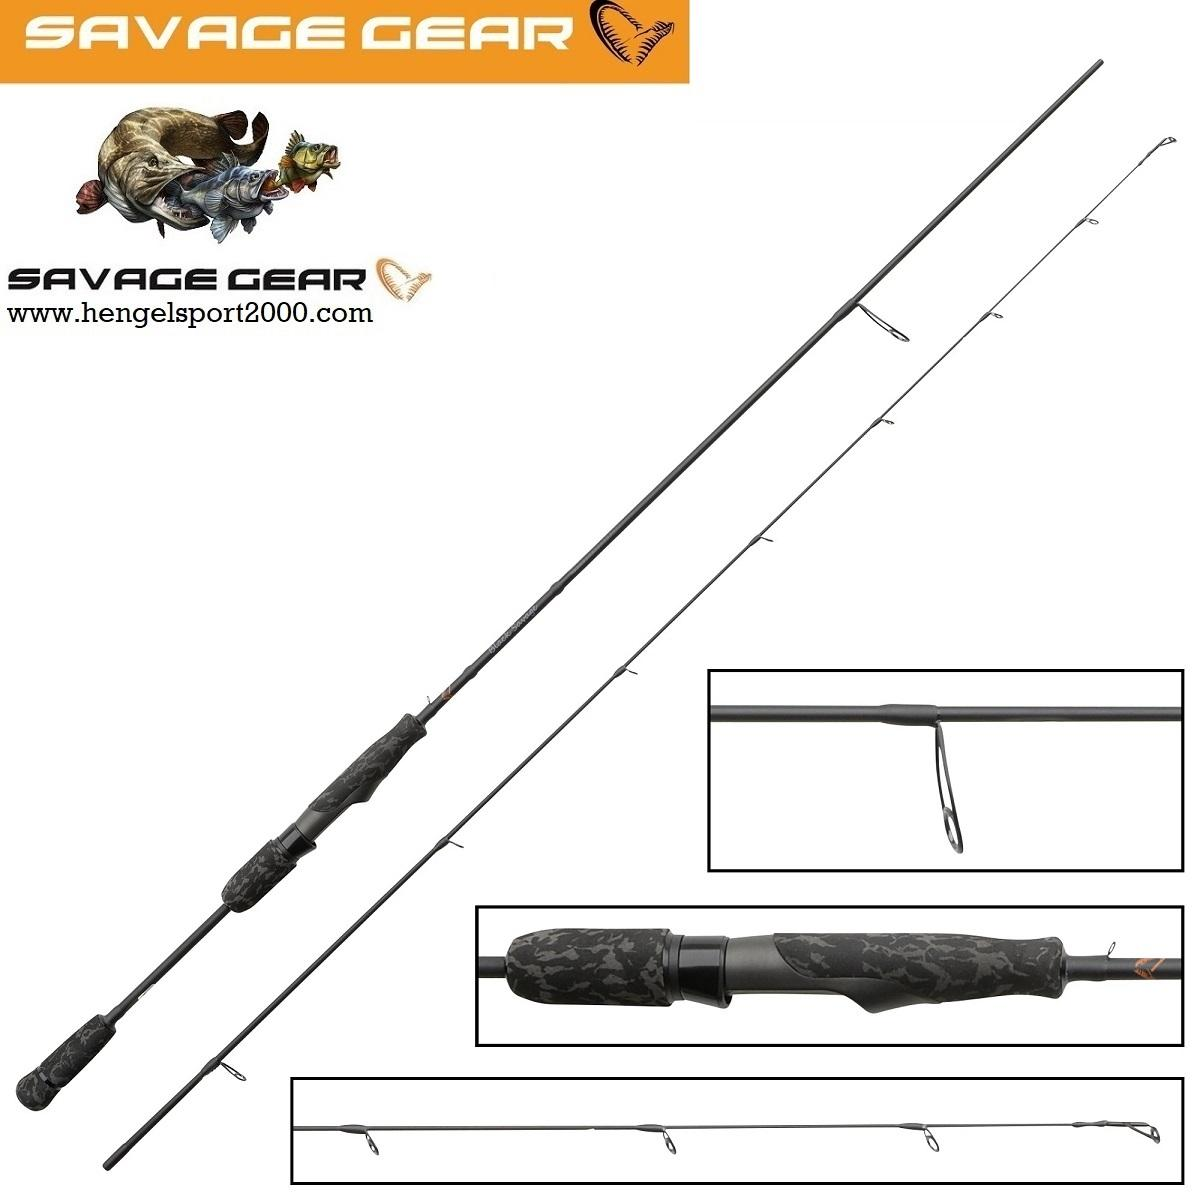 Savage Gear Black Savage Spin Rod 198 cm 2 - 7 gram